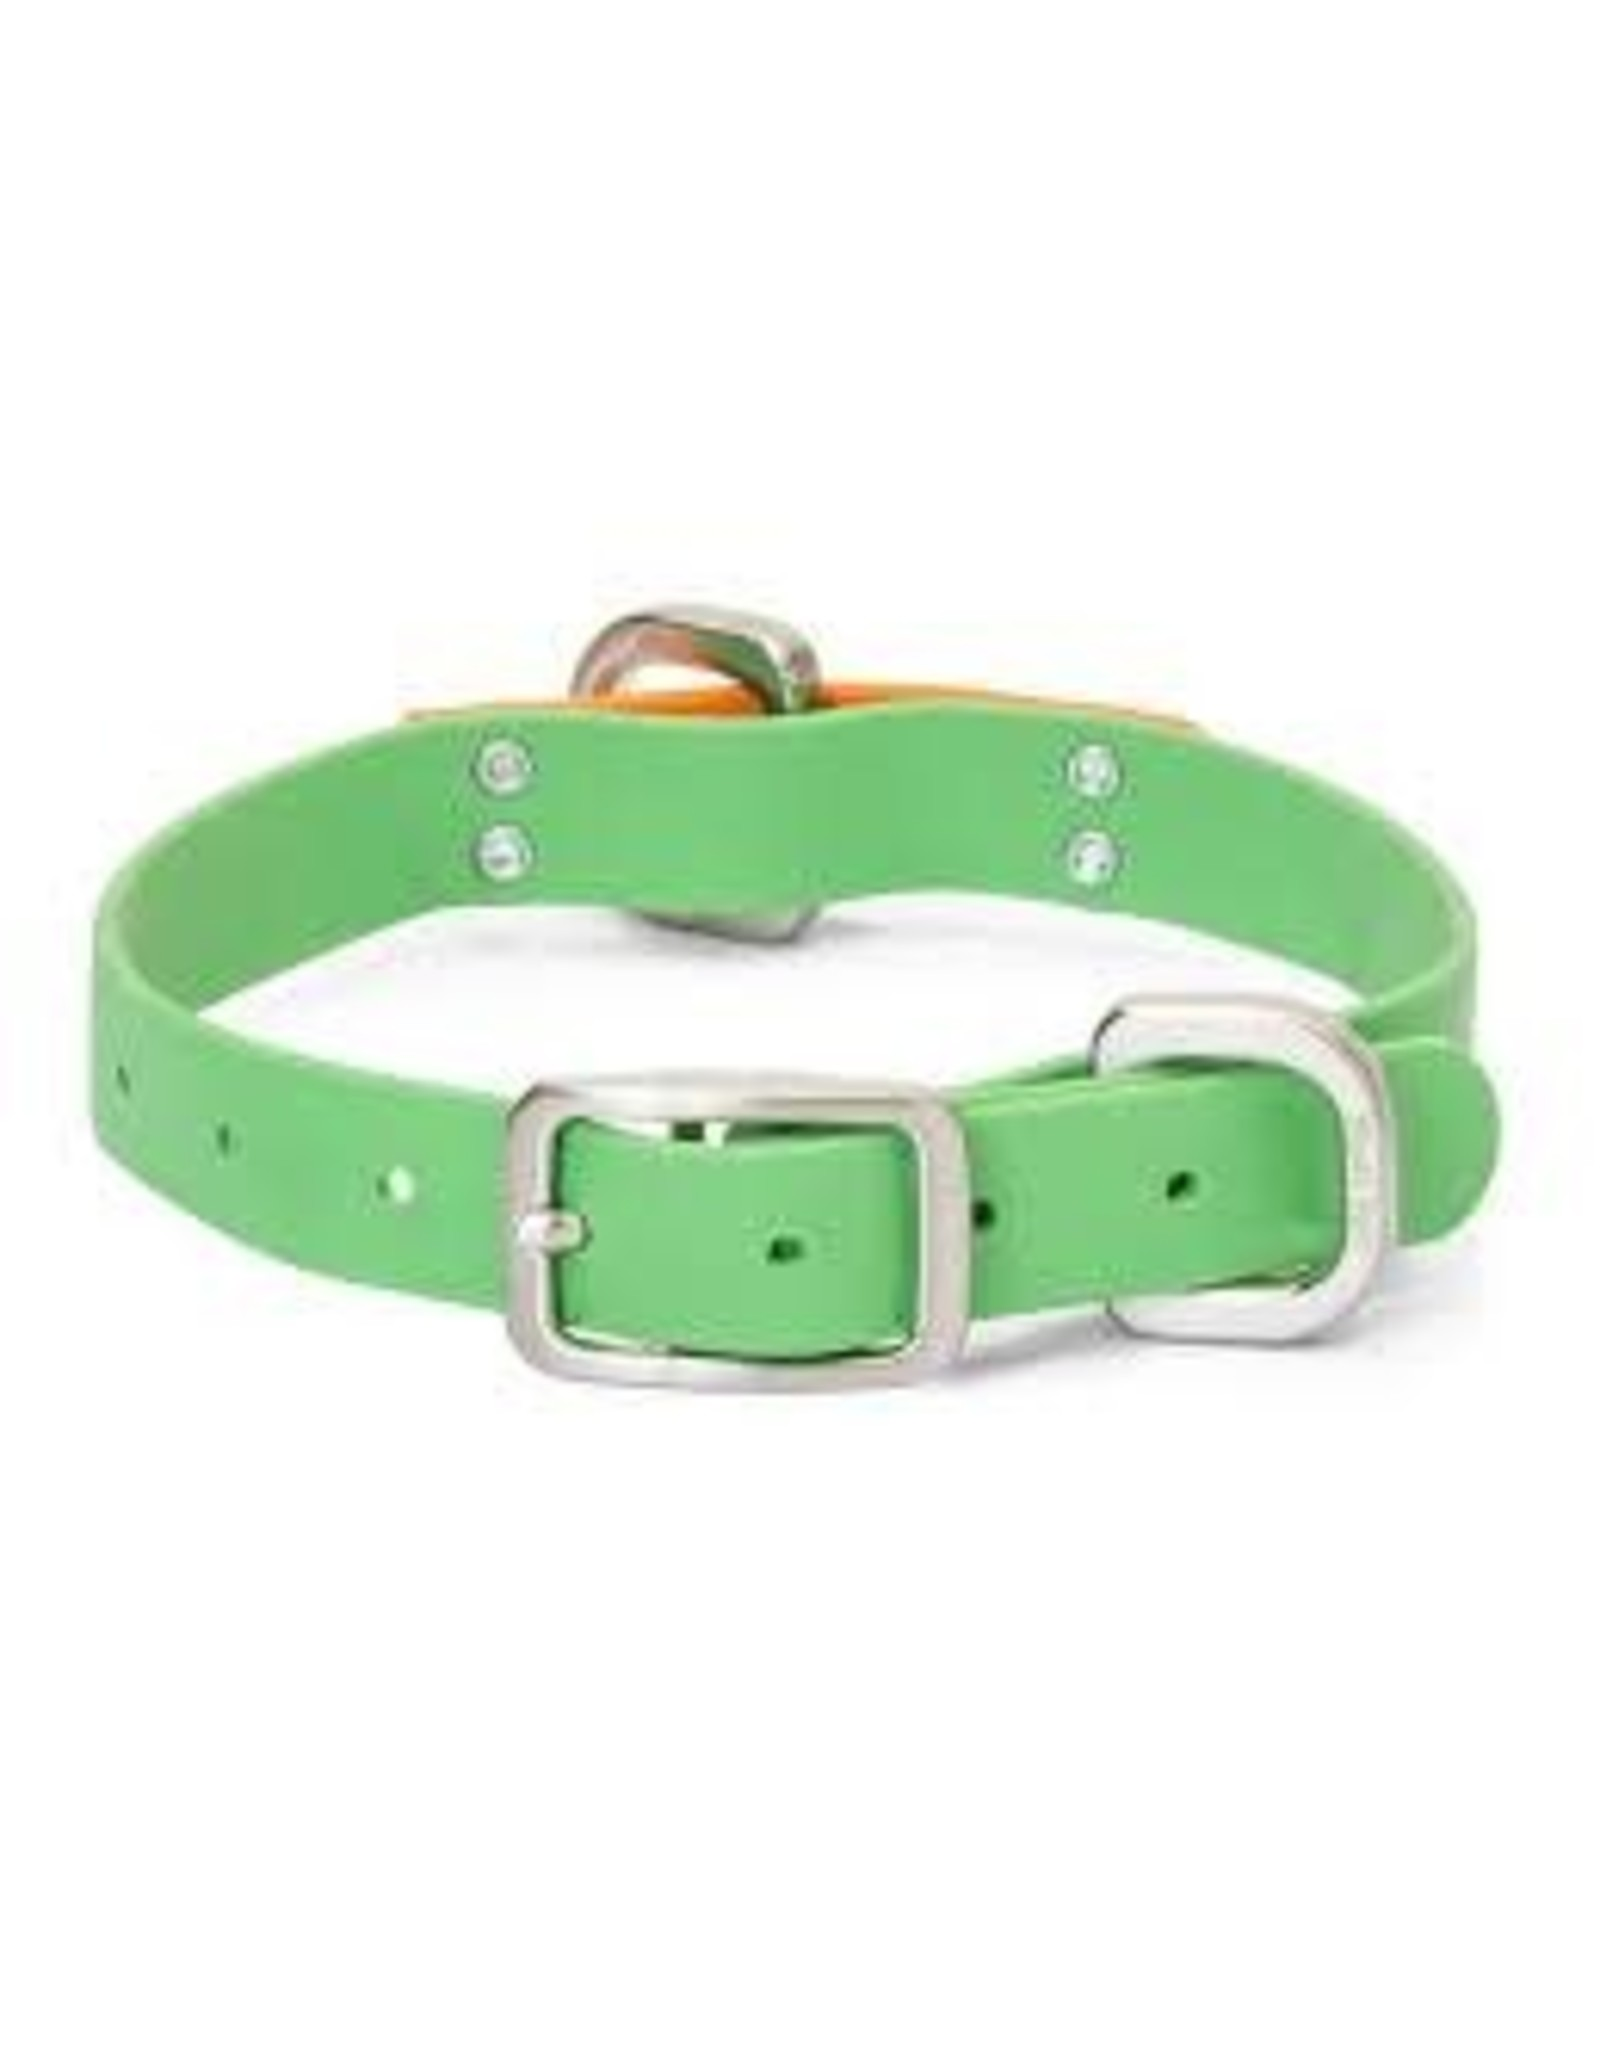 WEST PAW WEST PAW JAUNTS COLLAR MED-GREEN